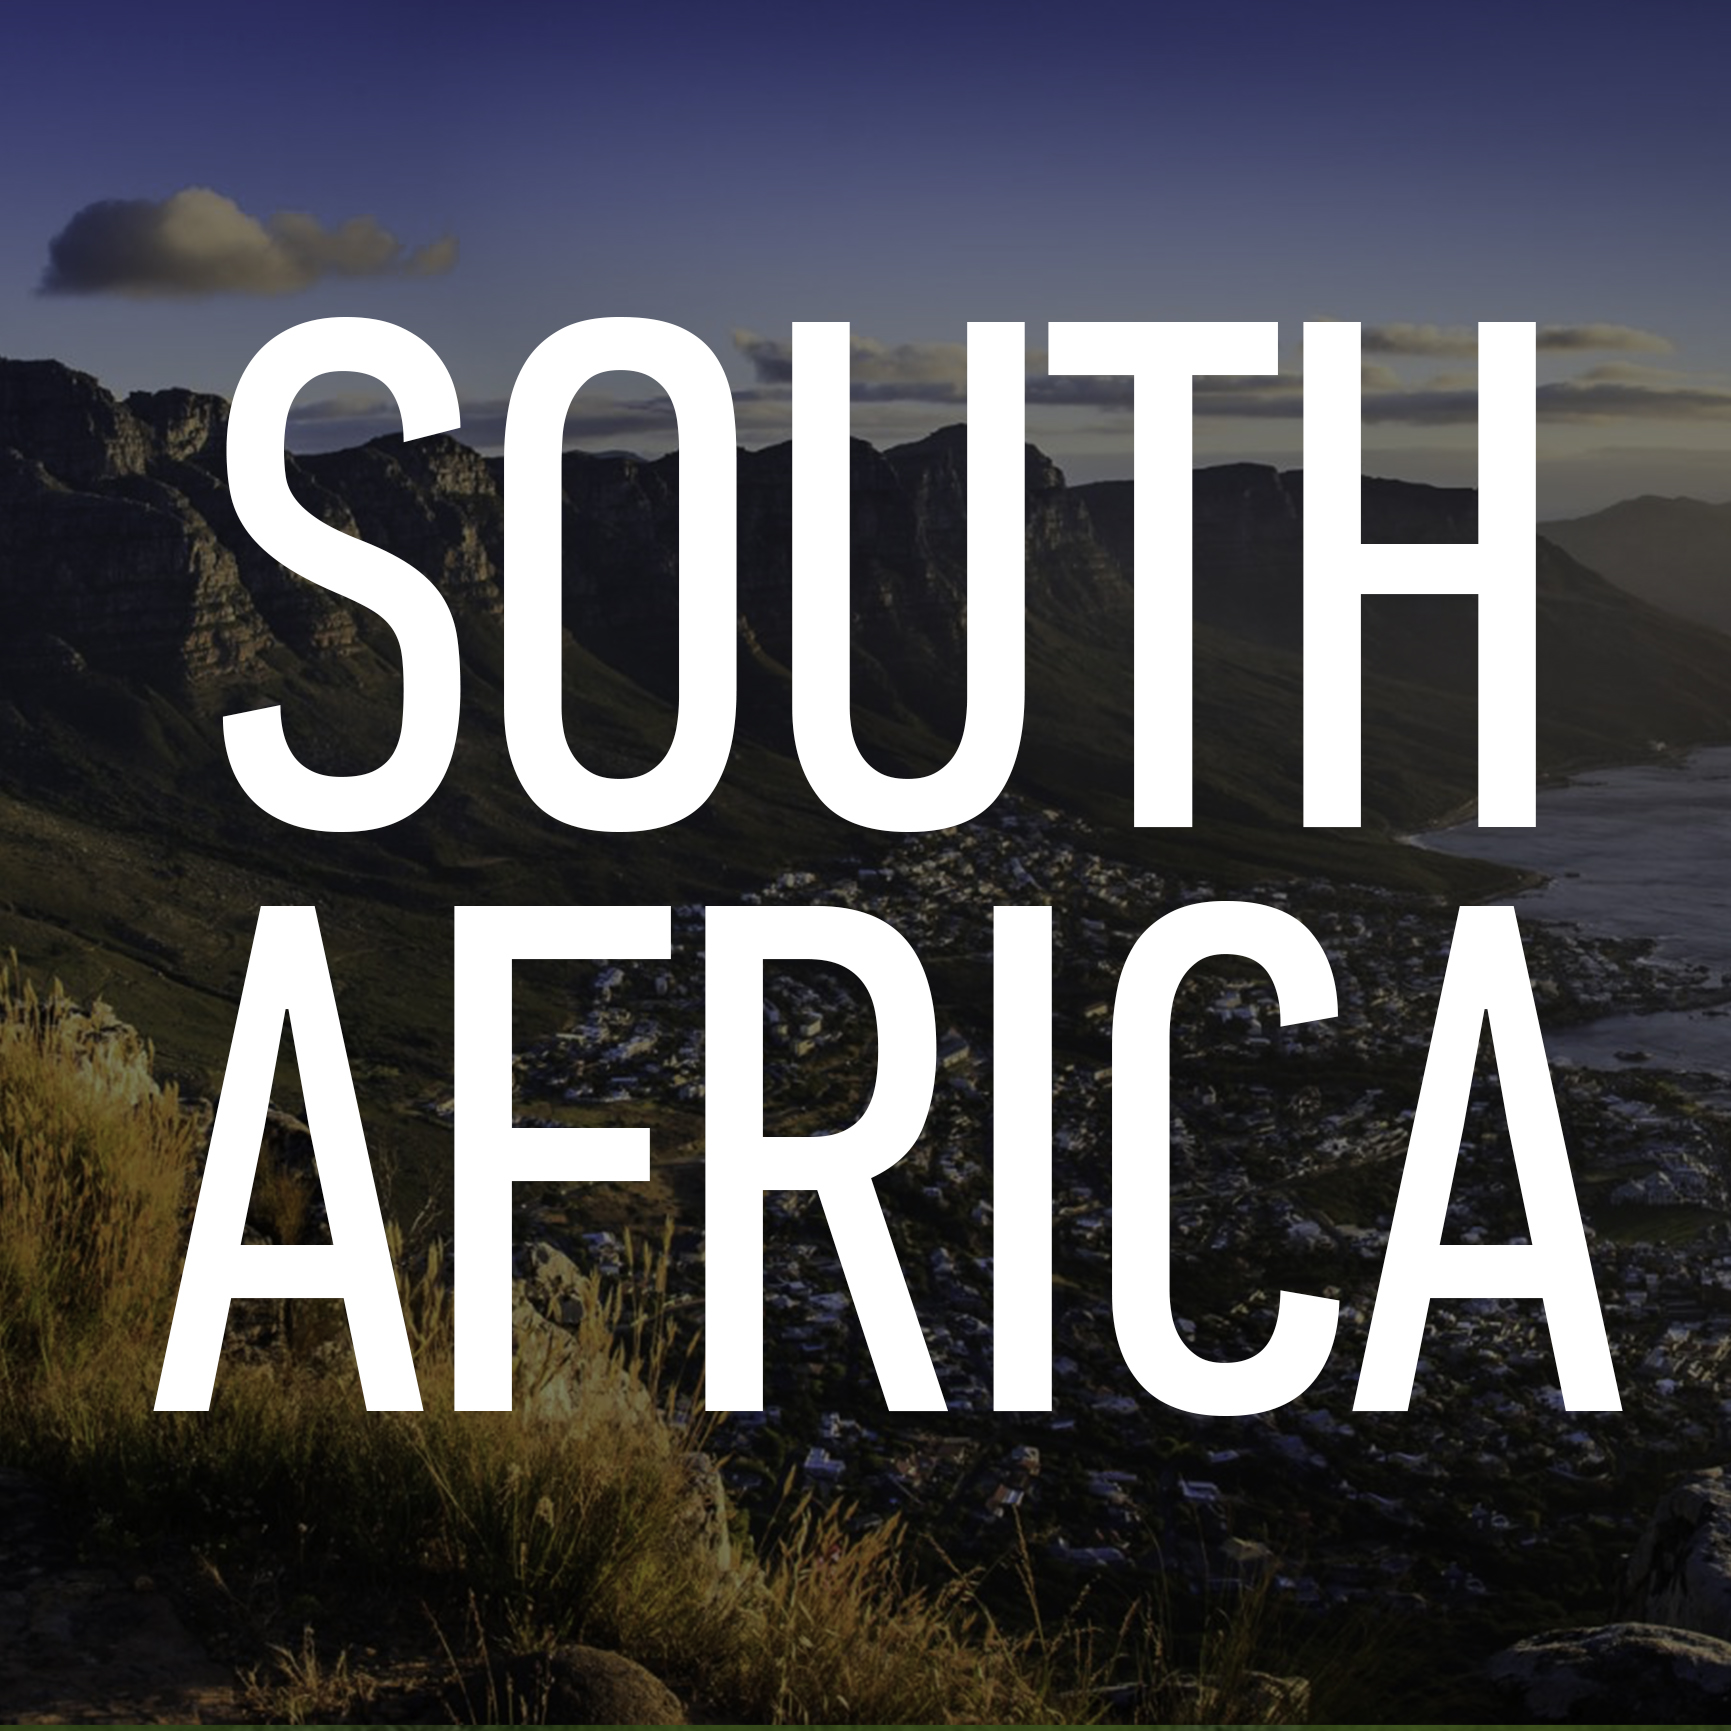 Pray for Lindsey and Gabe Fisher in South Africa. They are working to train and disciple interns for Extreme Response as well as working in children's ministry in their local church, engaging with afterschool programs, and ministering to kids in soccer clubs.This couple desires to see South Africa come to Christ.